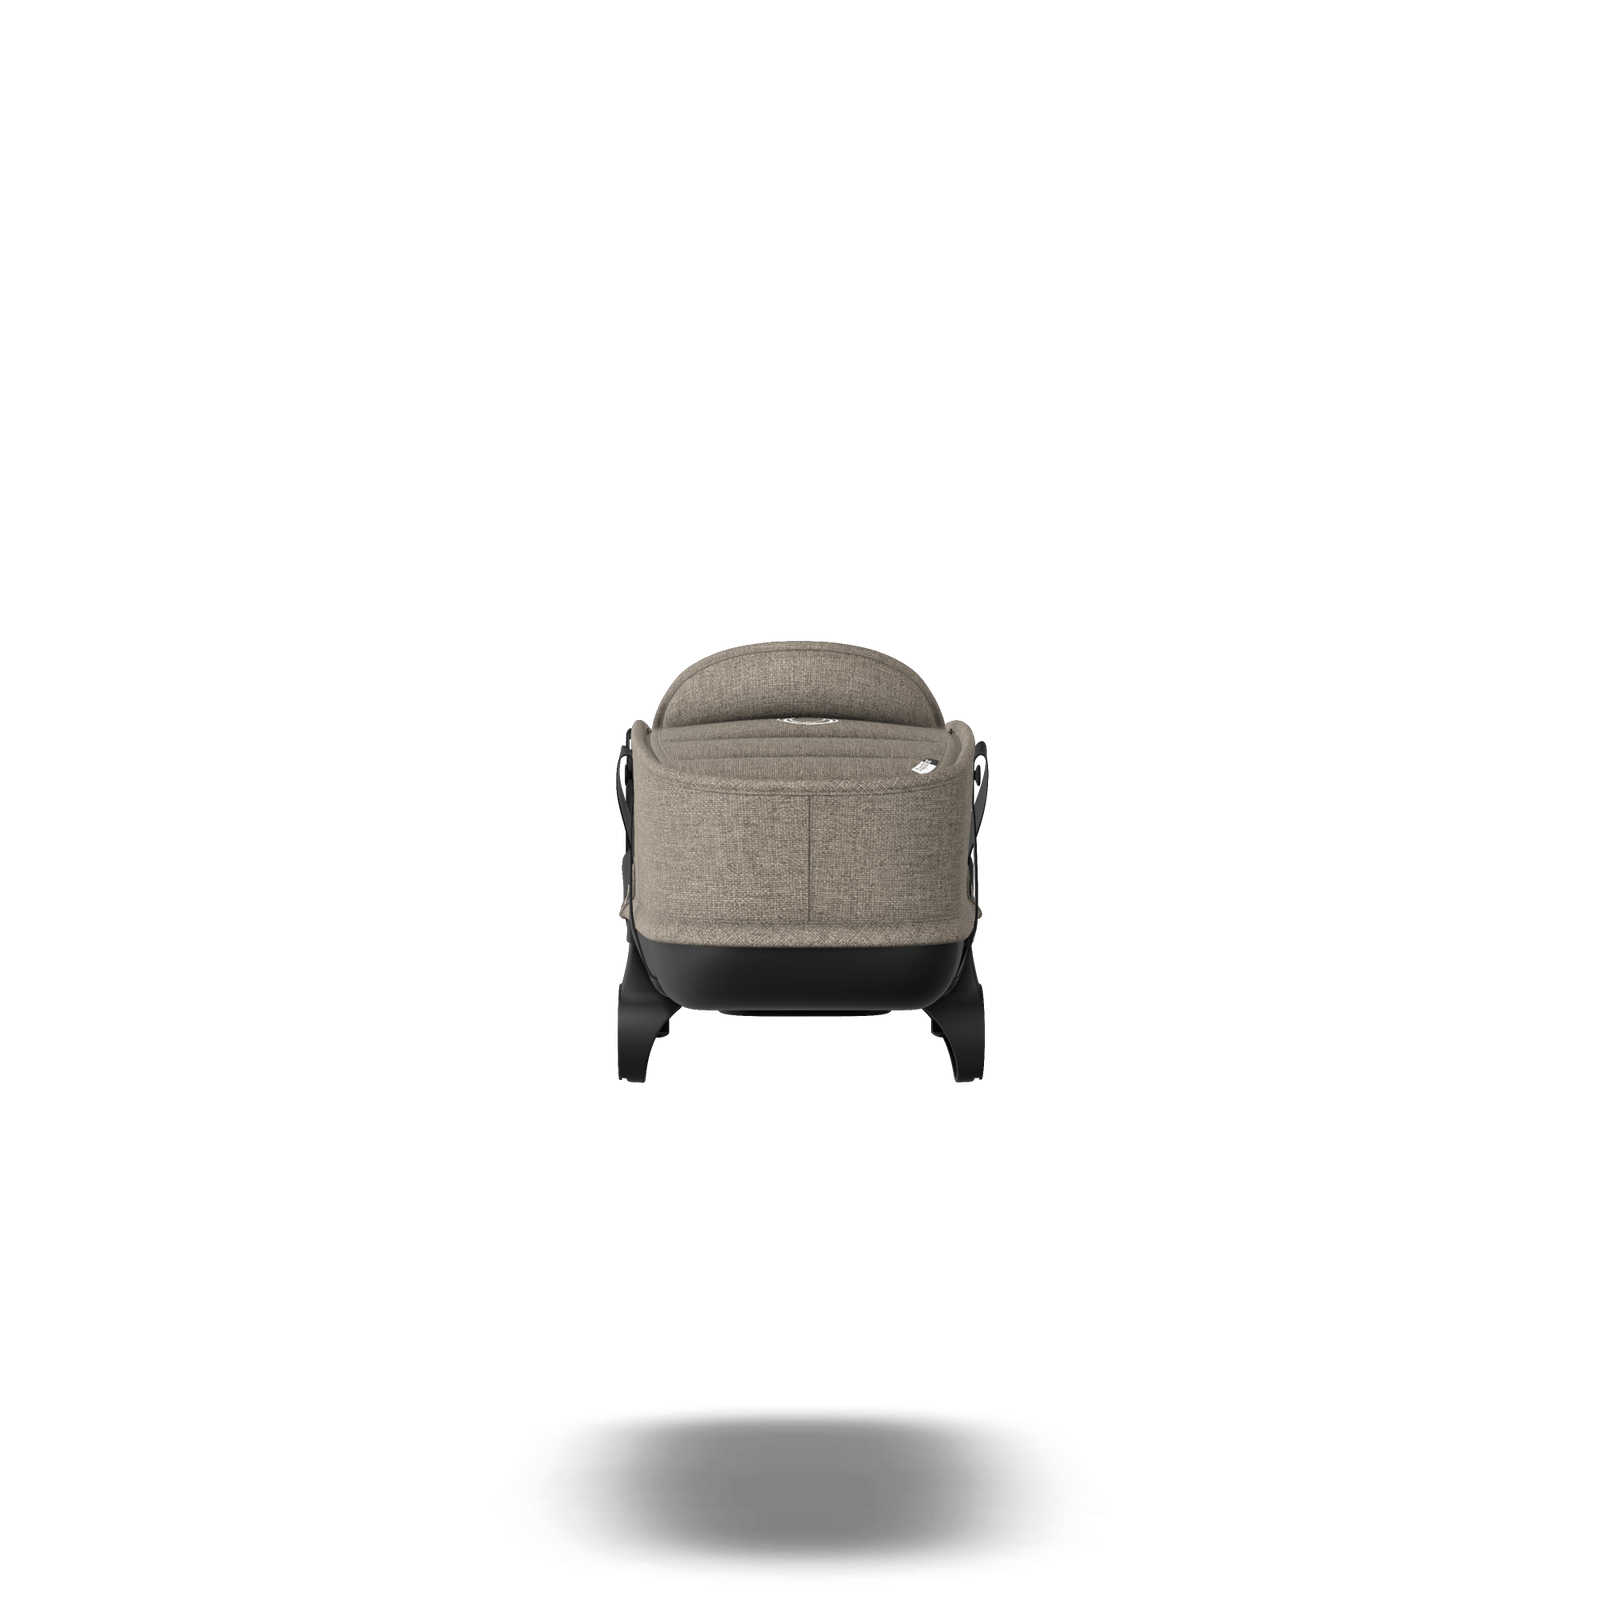 Bugaboo Bee 5 bassinet tailored fabric set